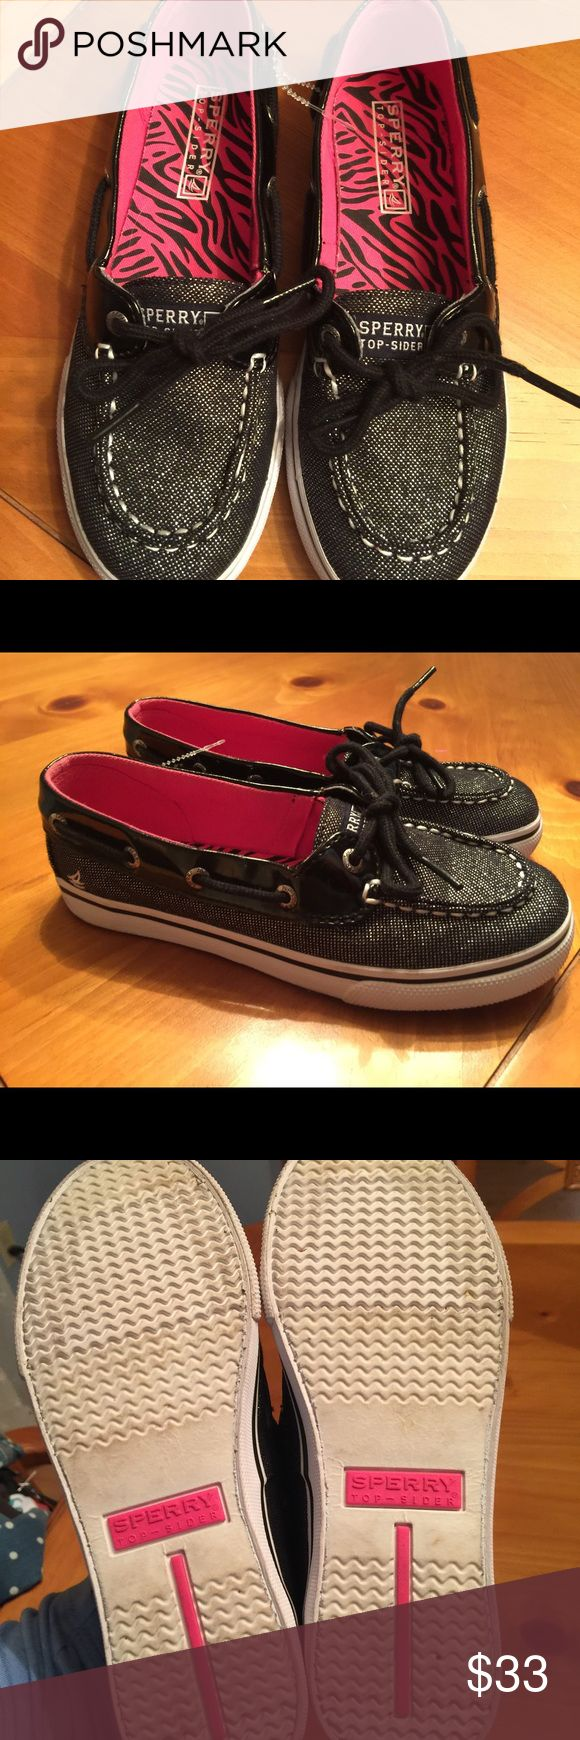 Youth Girls Sperry Top-Sider Shoes 2M  EUC Youth Girls Sperry Top-Sider Shoes 2M  Black & Sparkly Silver  Like new! Sperry Top-Sider Shoes